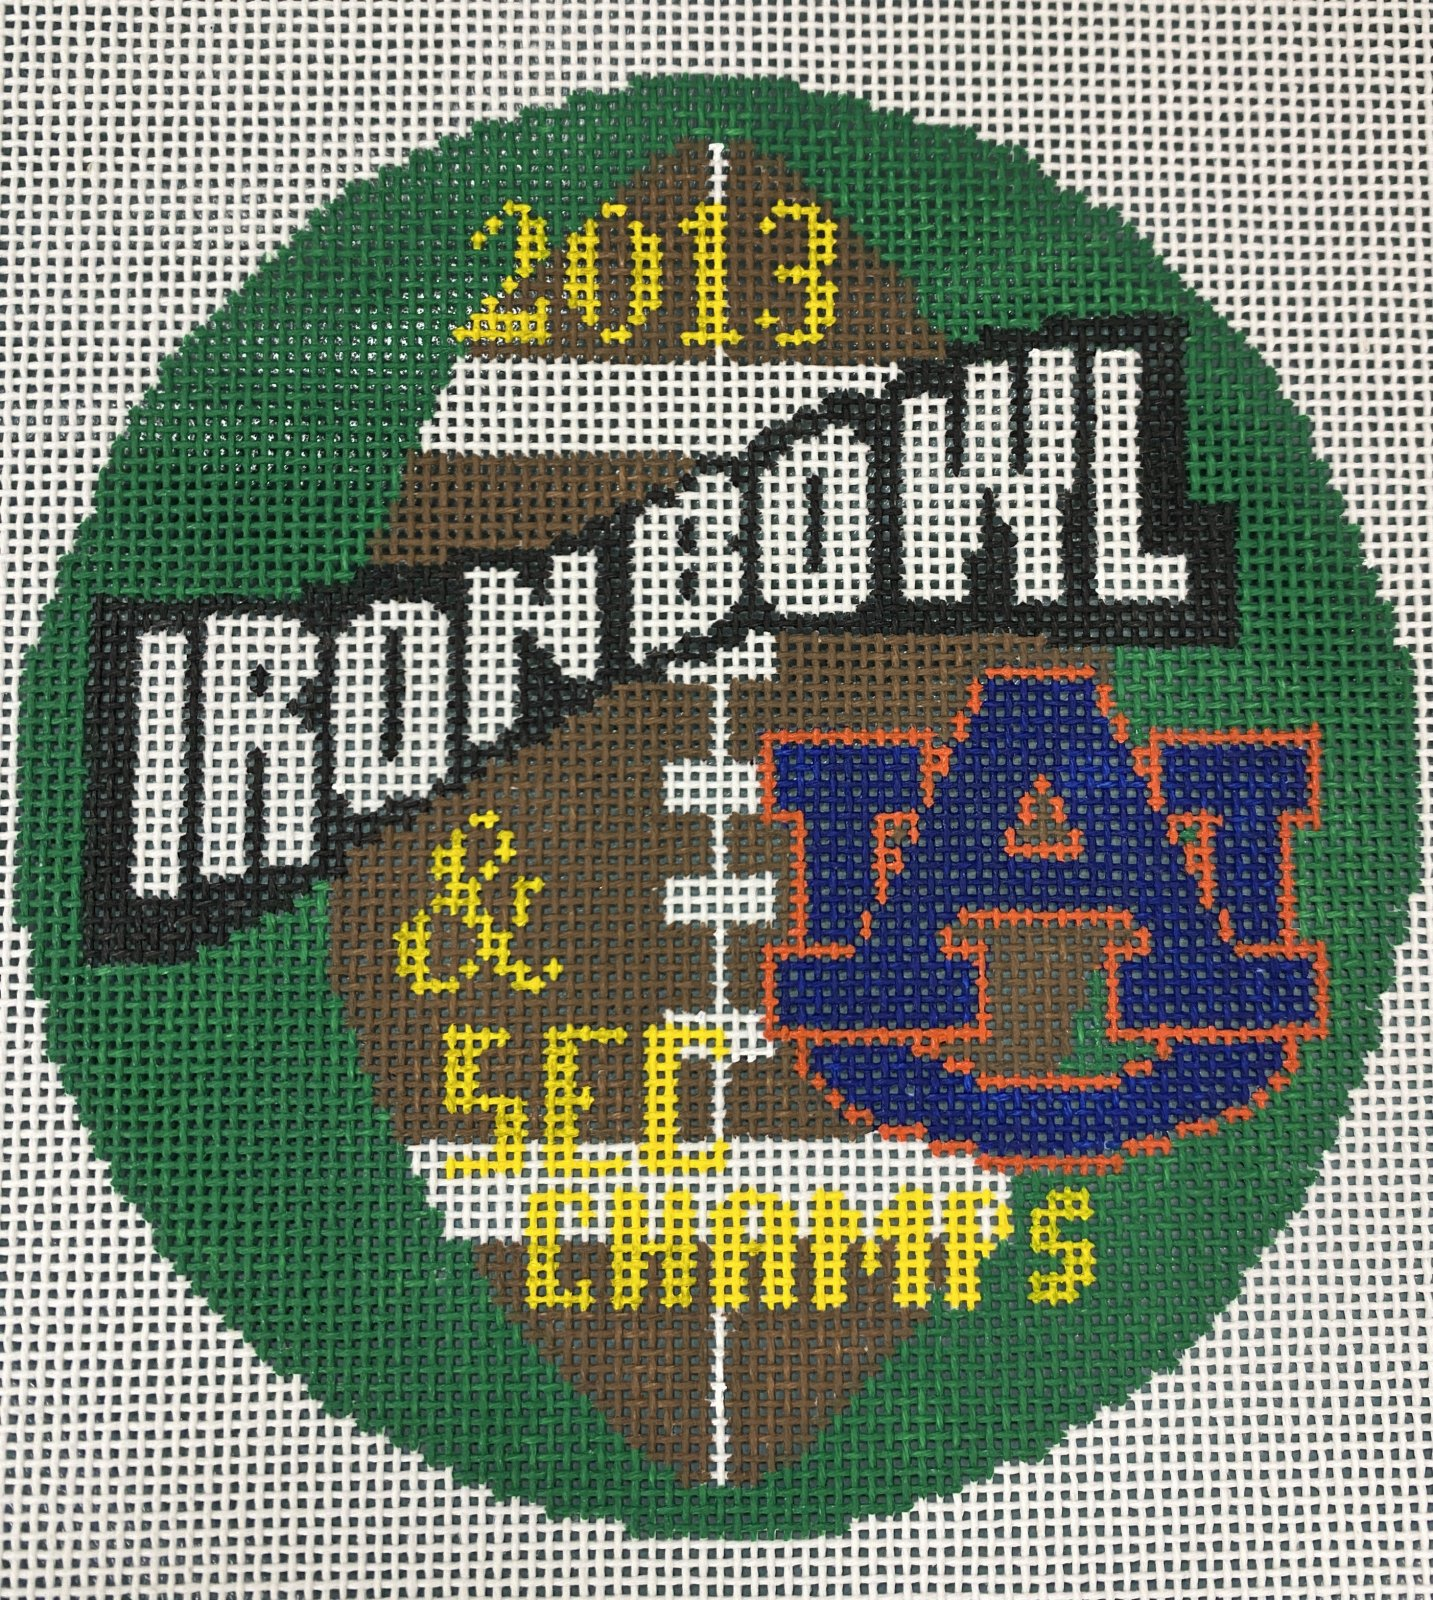 2013 exclusive Ironbowl/SEC Champs